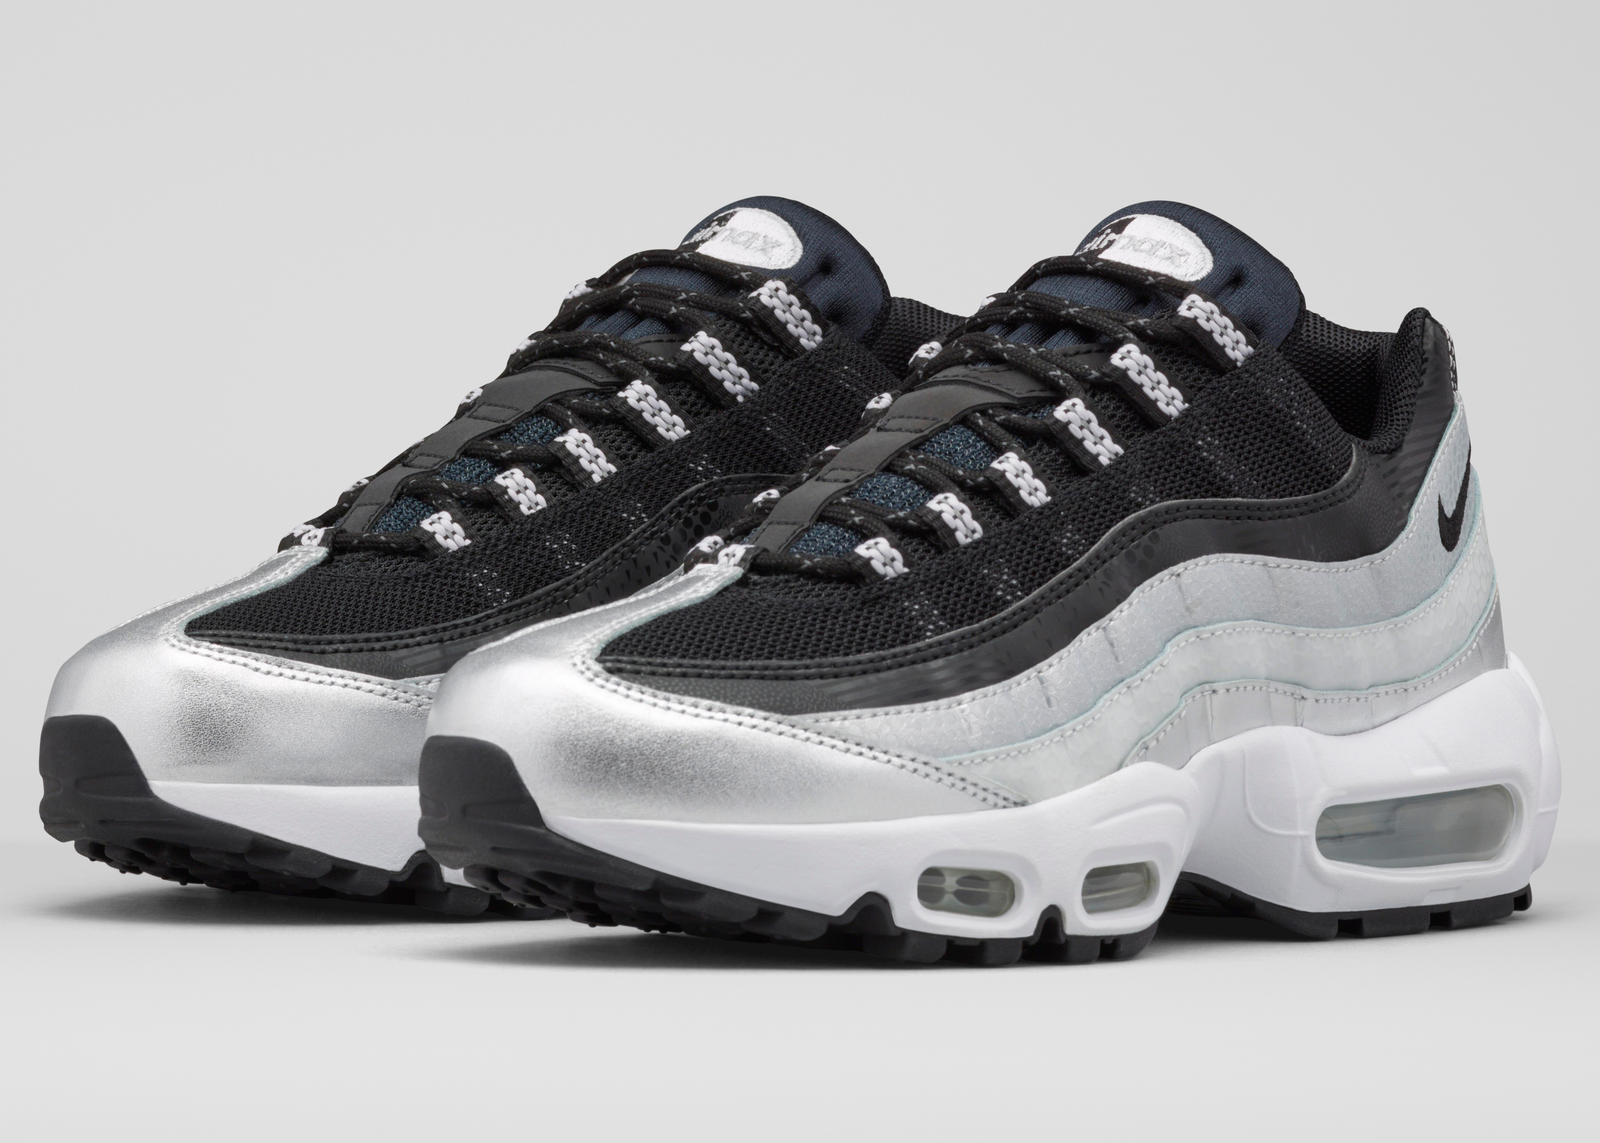 Top Nike Air Max 95 certificate Black White get